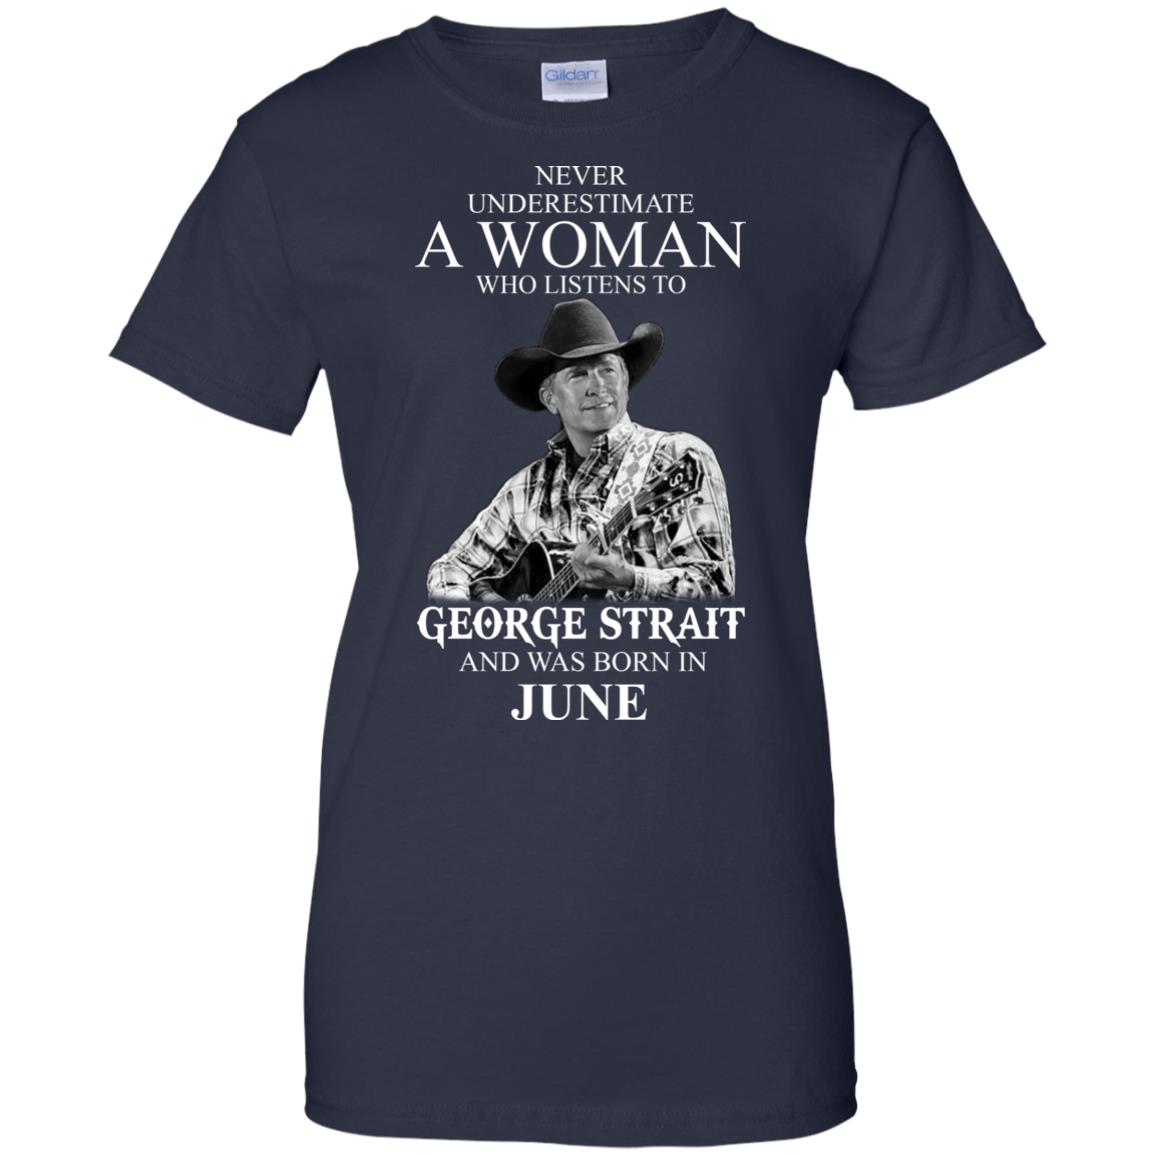 image 493 - Never Underestimate A Woman Who Listens To George Strait And Was Born In June shirt